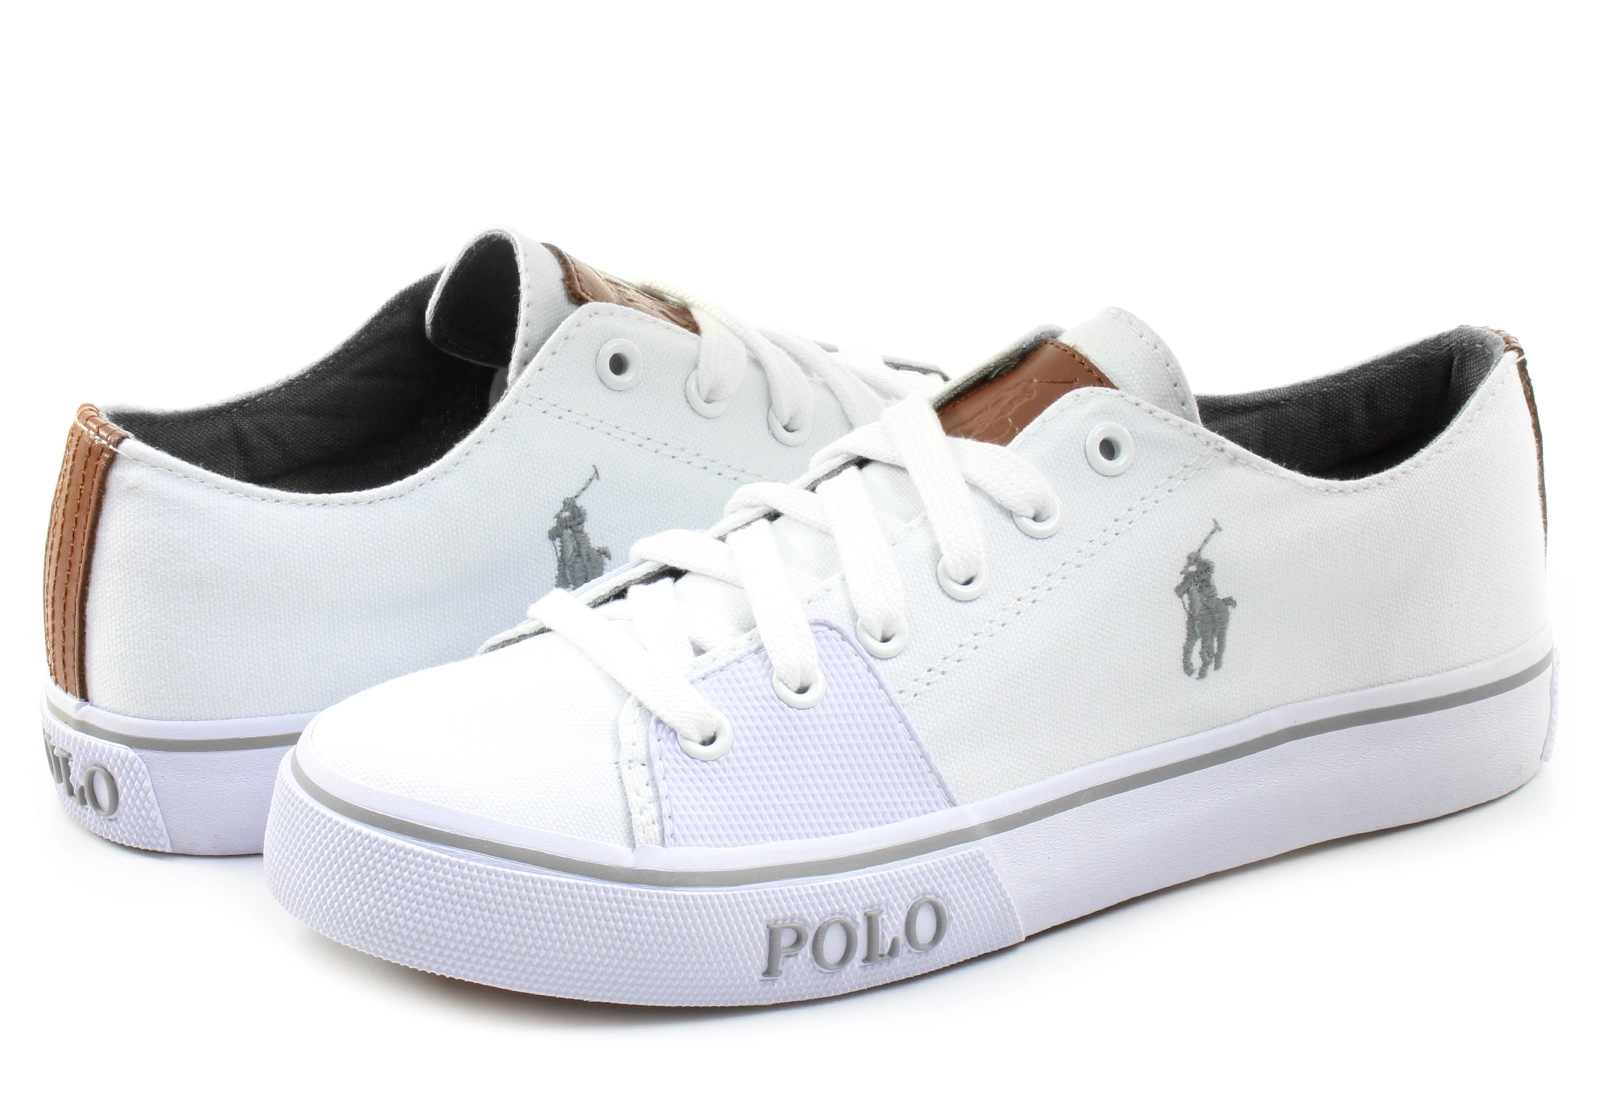 Polo Ralph Lauren Cipő - Cantor Low-ne - 2003-C-A1557 - Office Shoes ... c0f123c0de